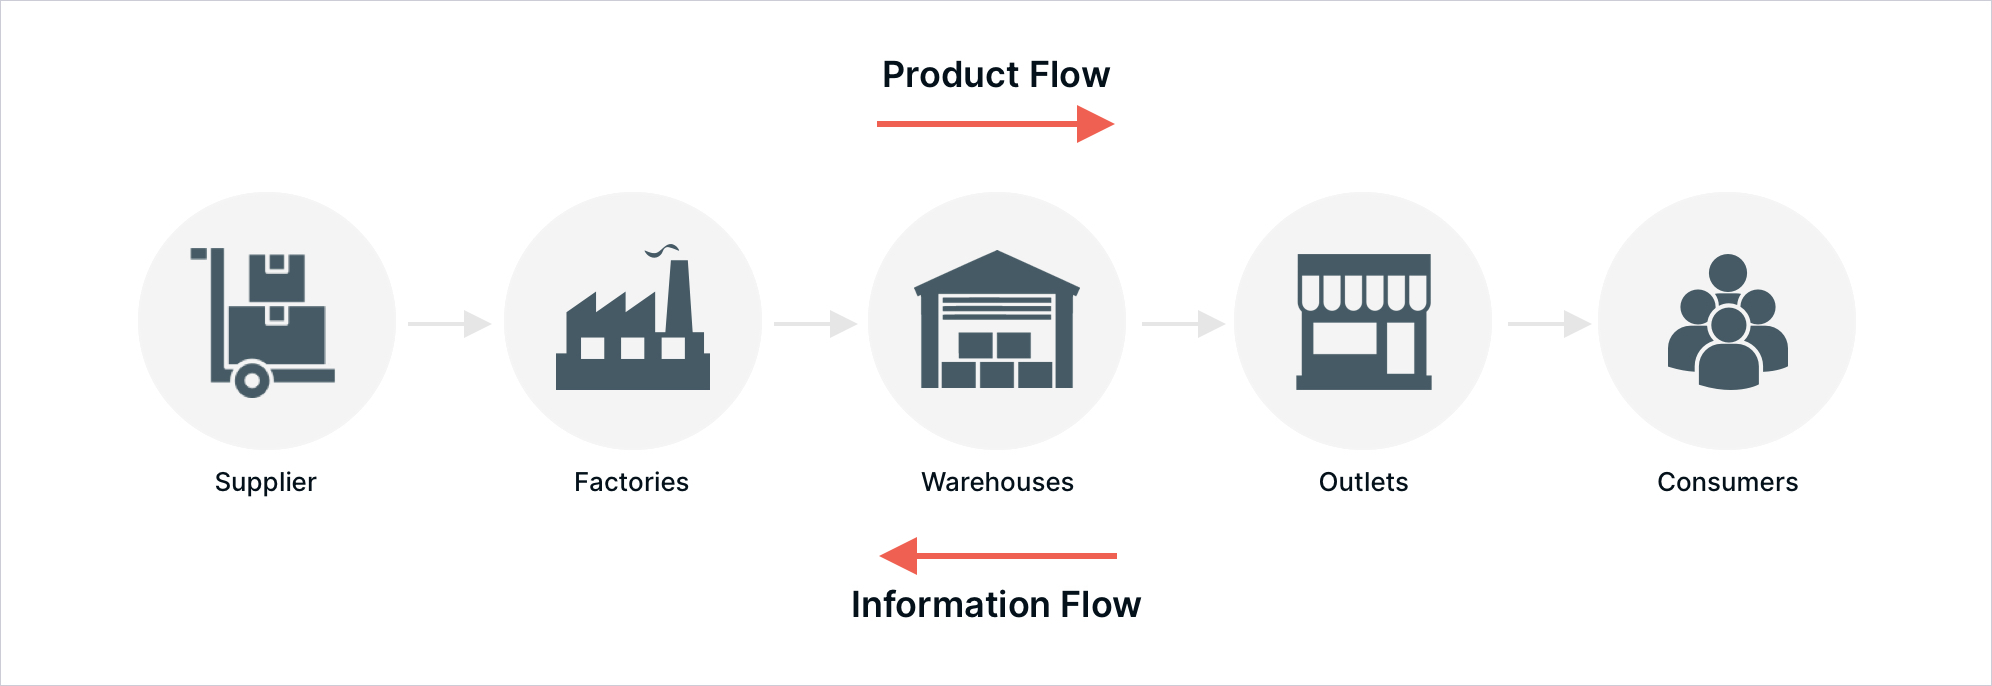 product flow and information flow